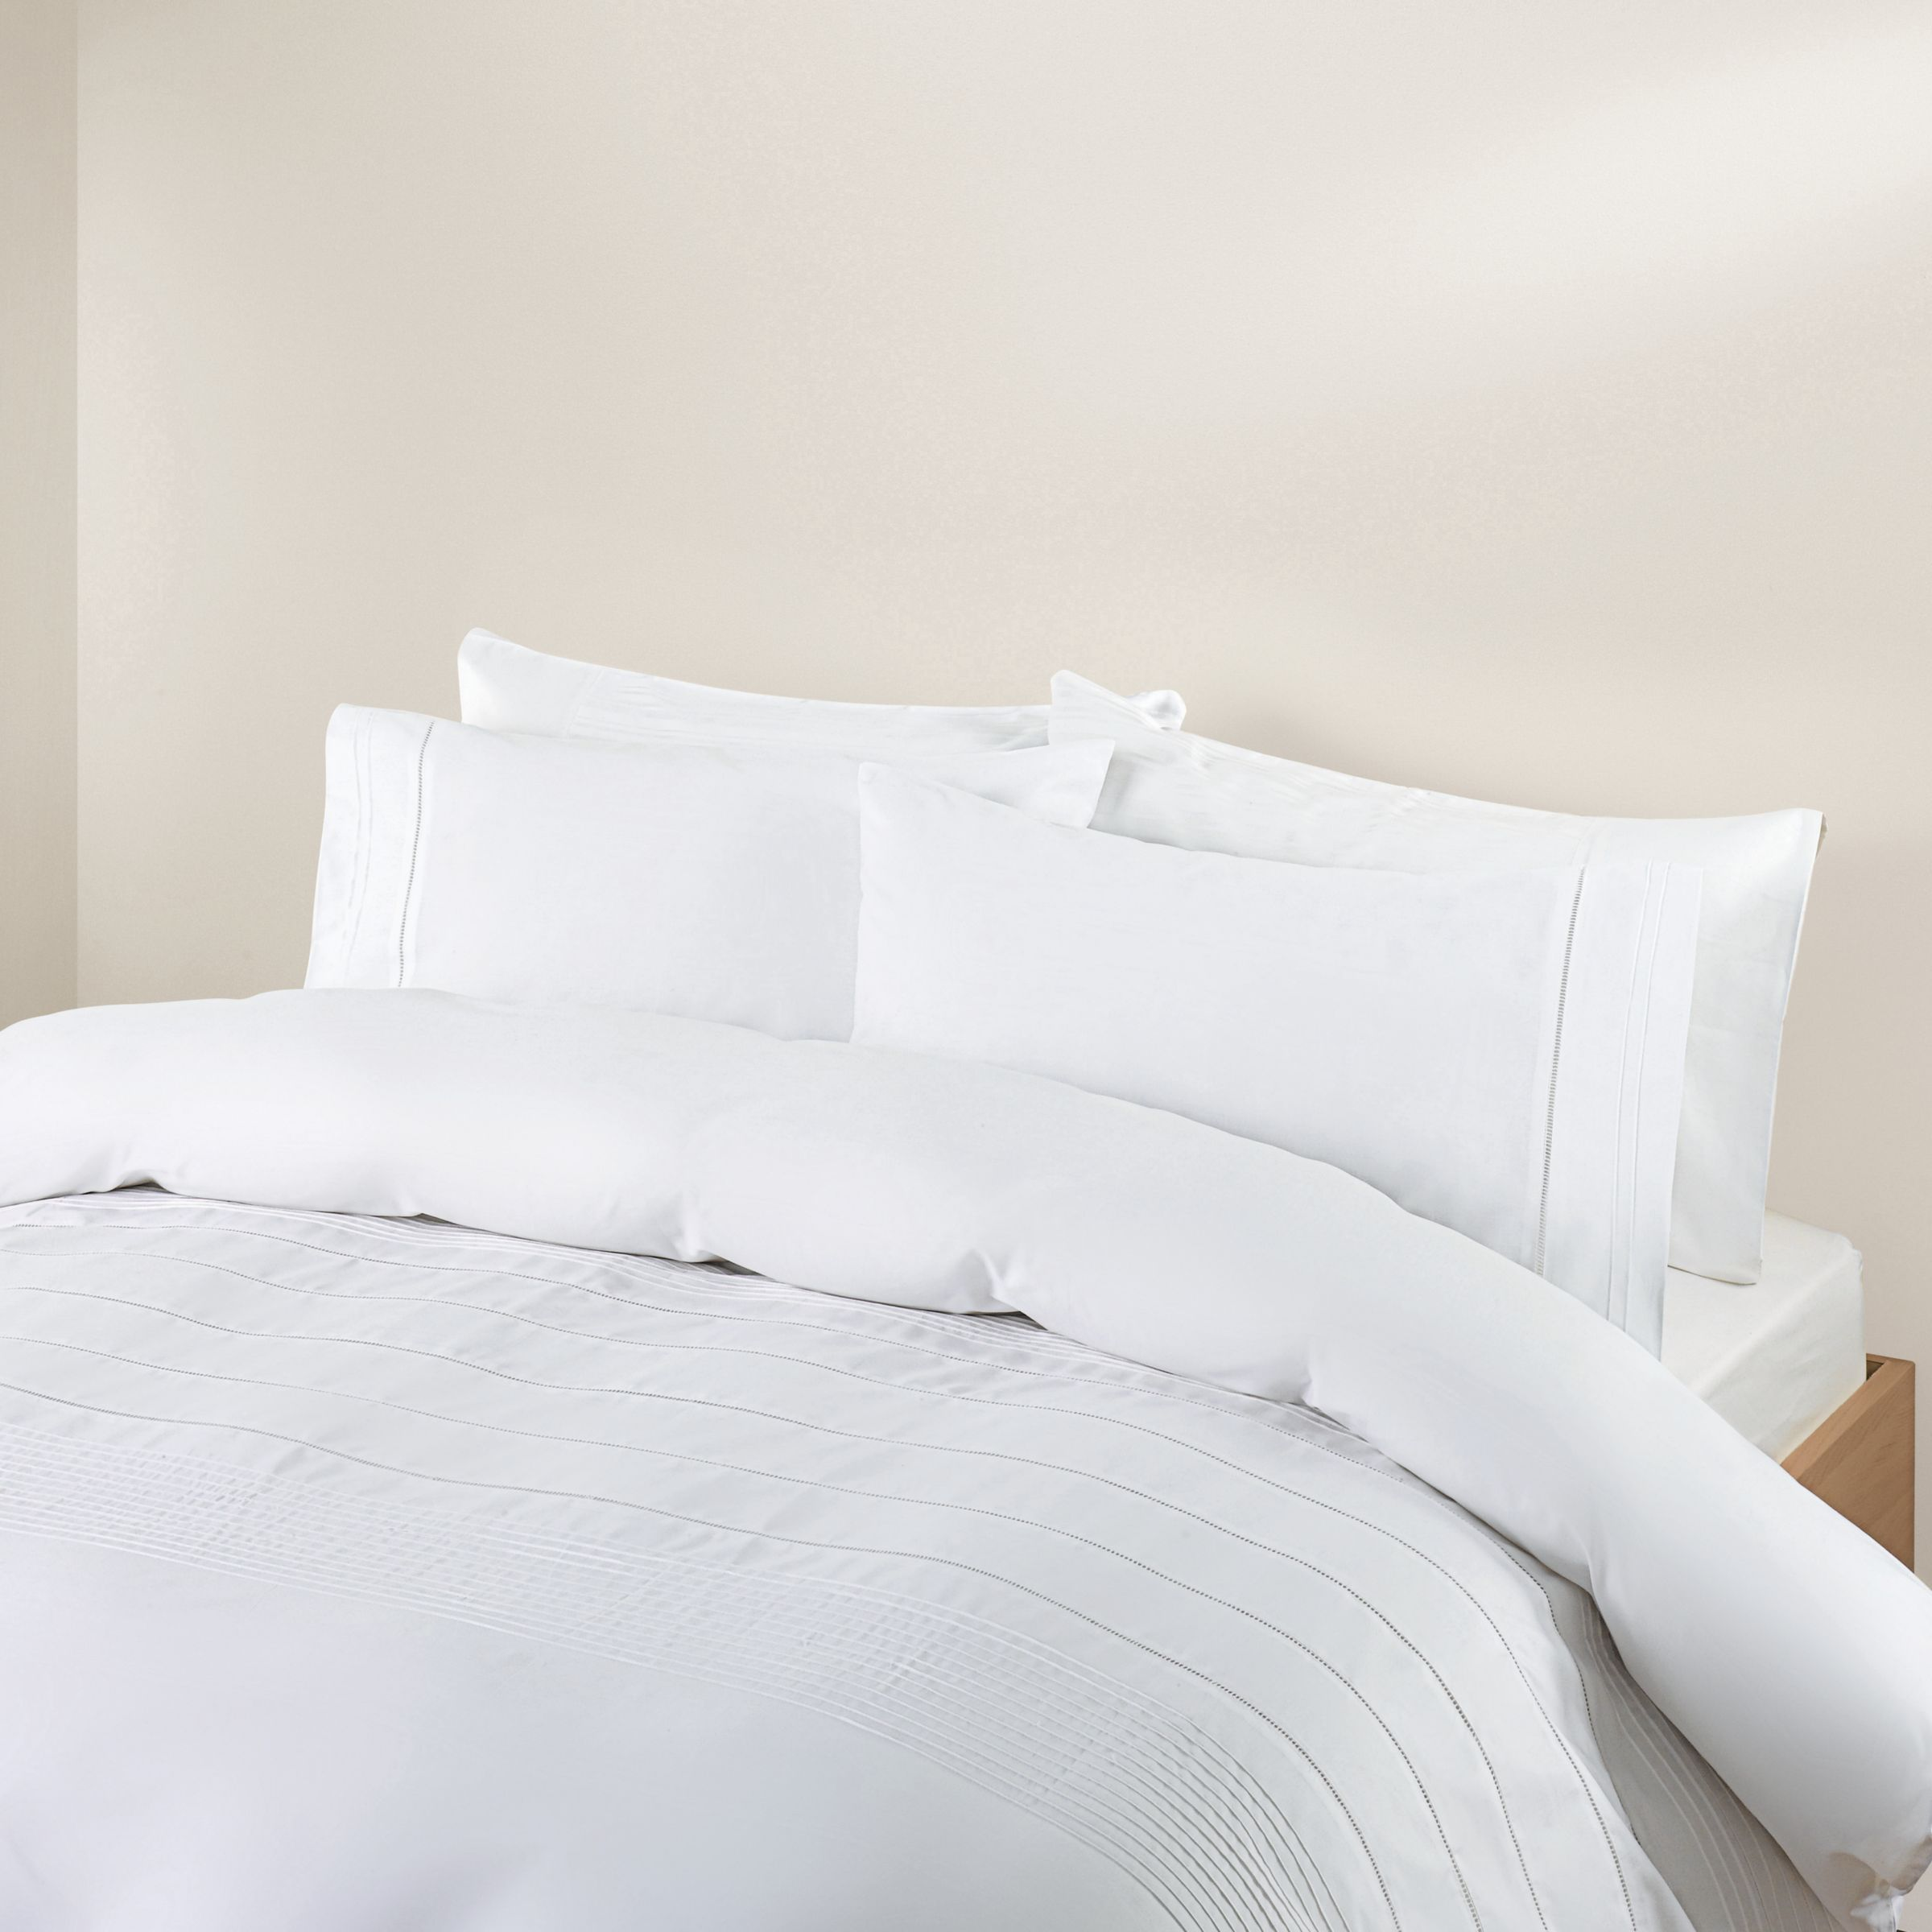 john lewis ladderstitch duvet covers white review. Black Bedroom Furniture Sets. Home Design Ideas